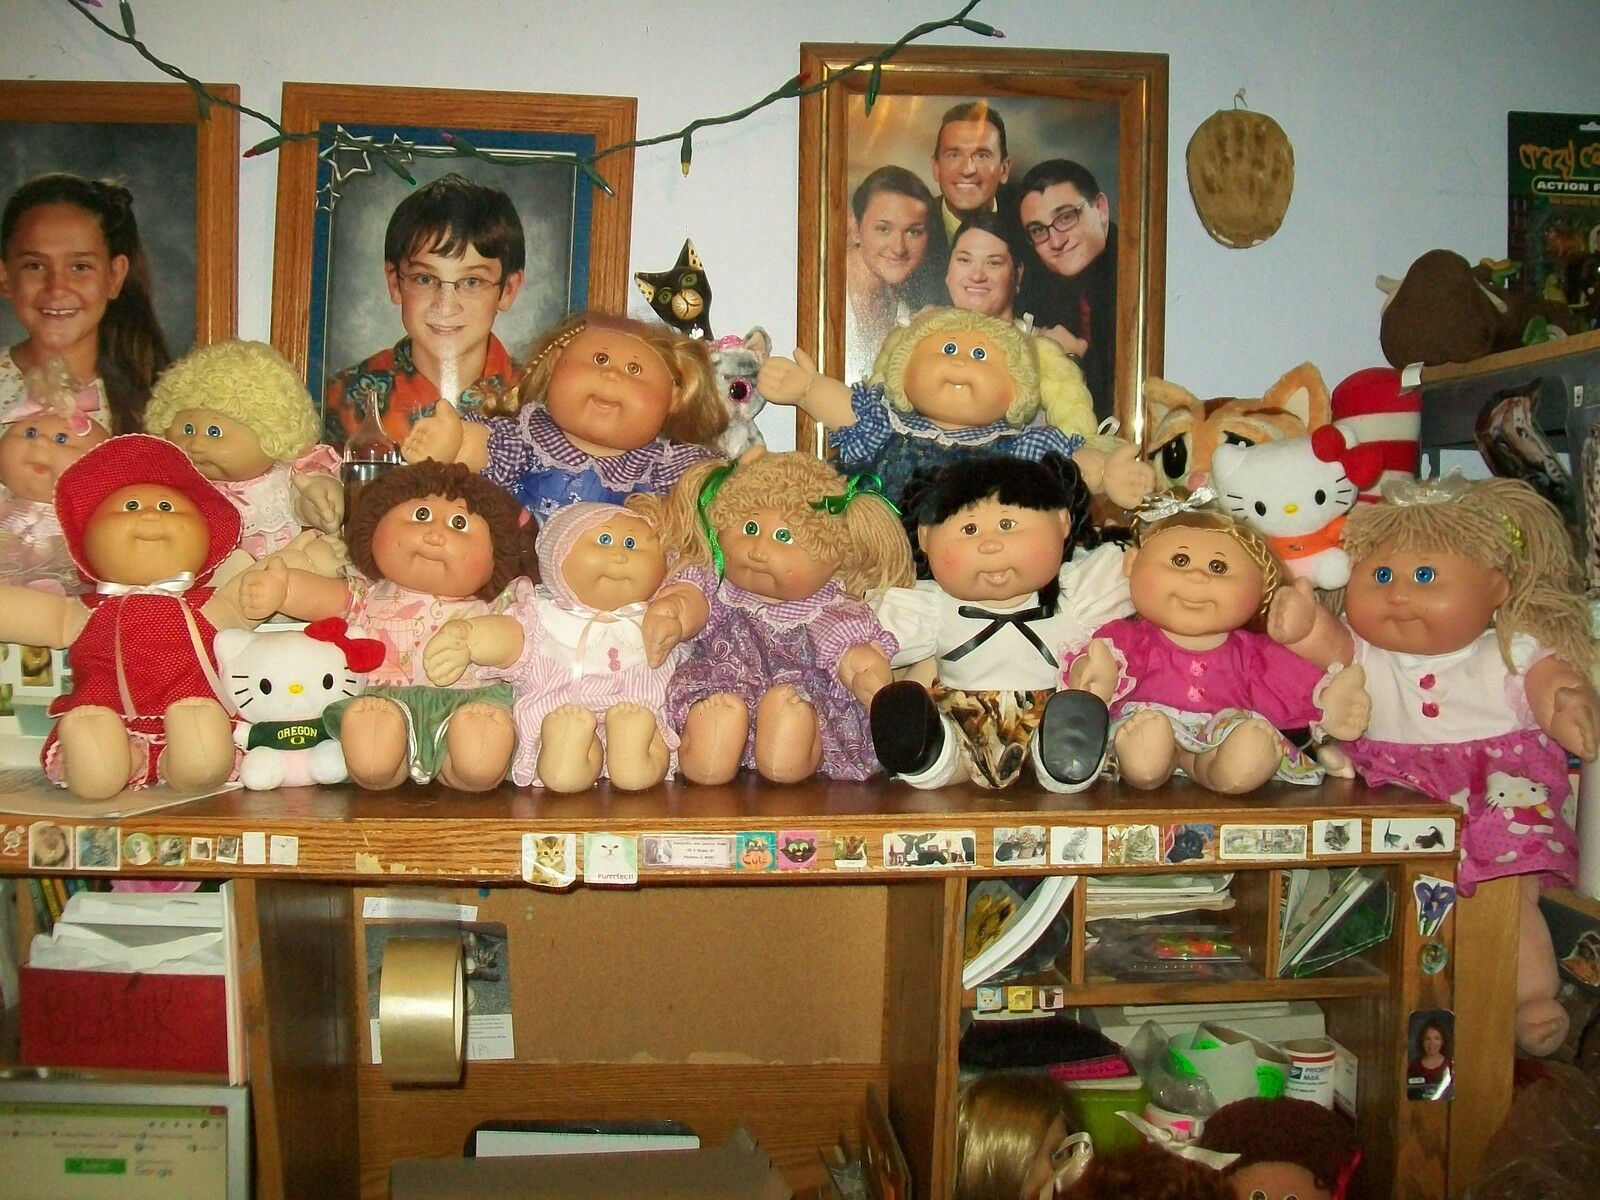 SUSAN'S CABBAGE PATCH CLOTHES